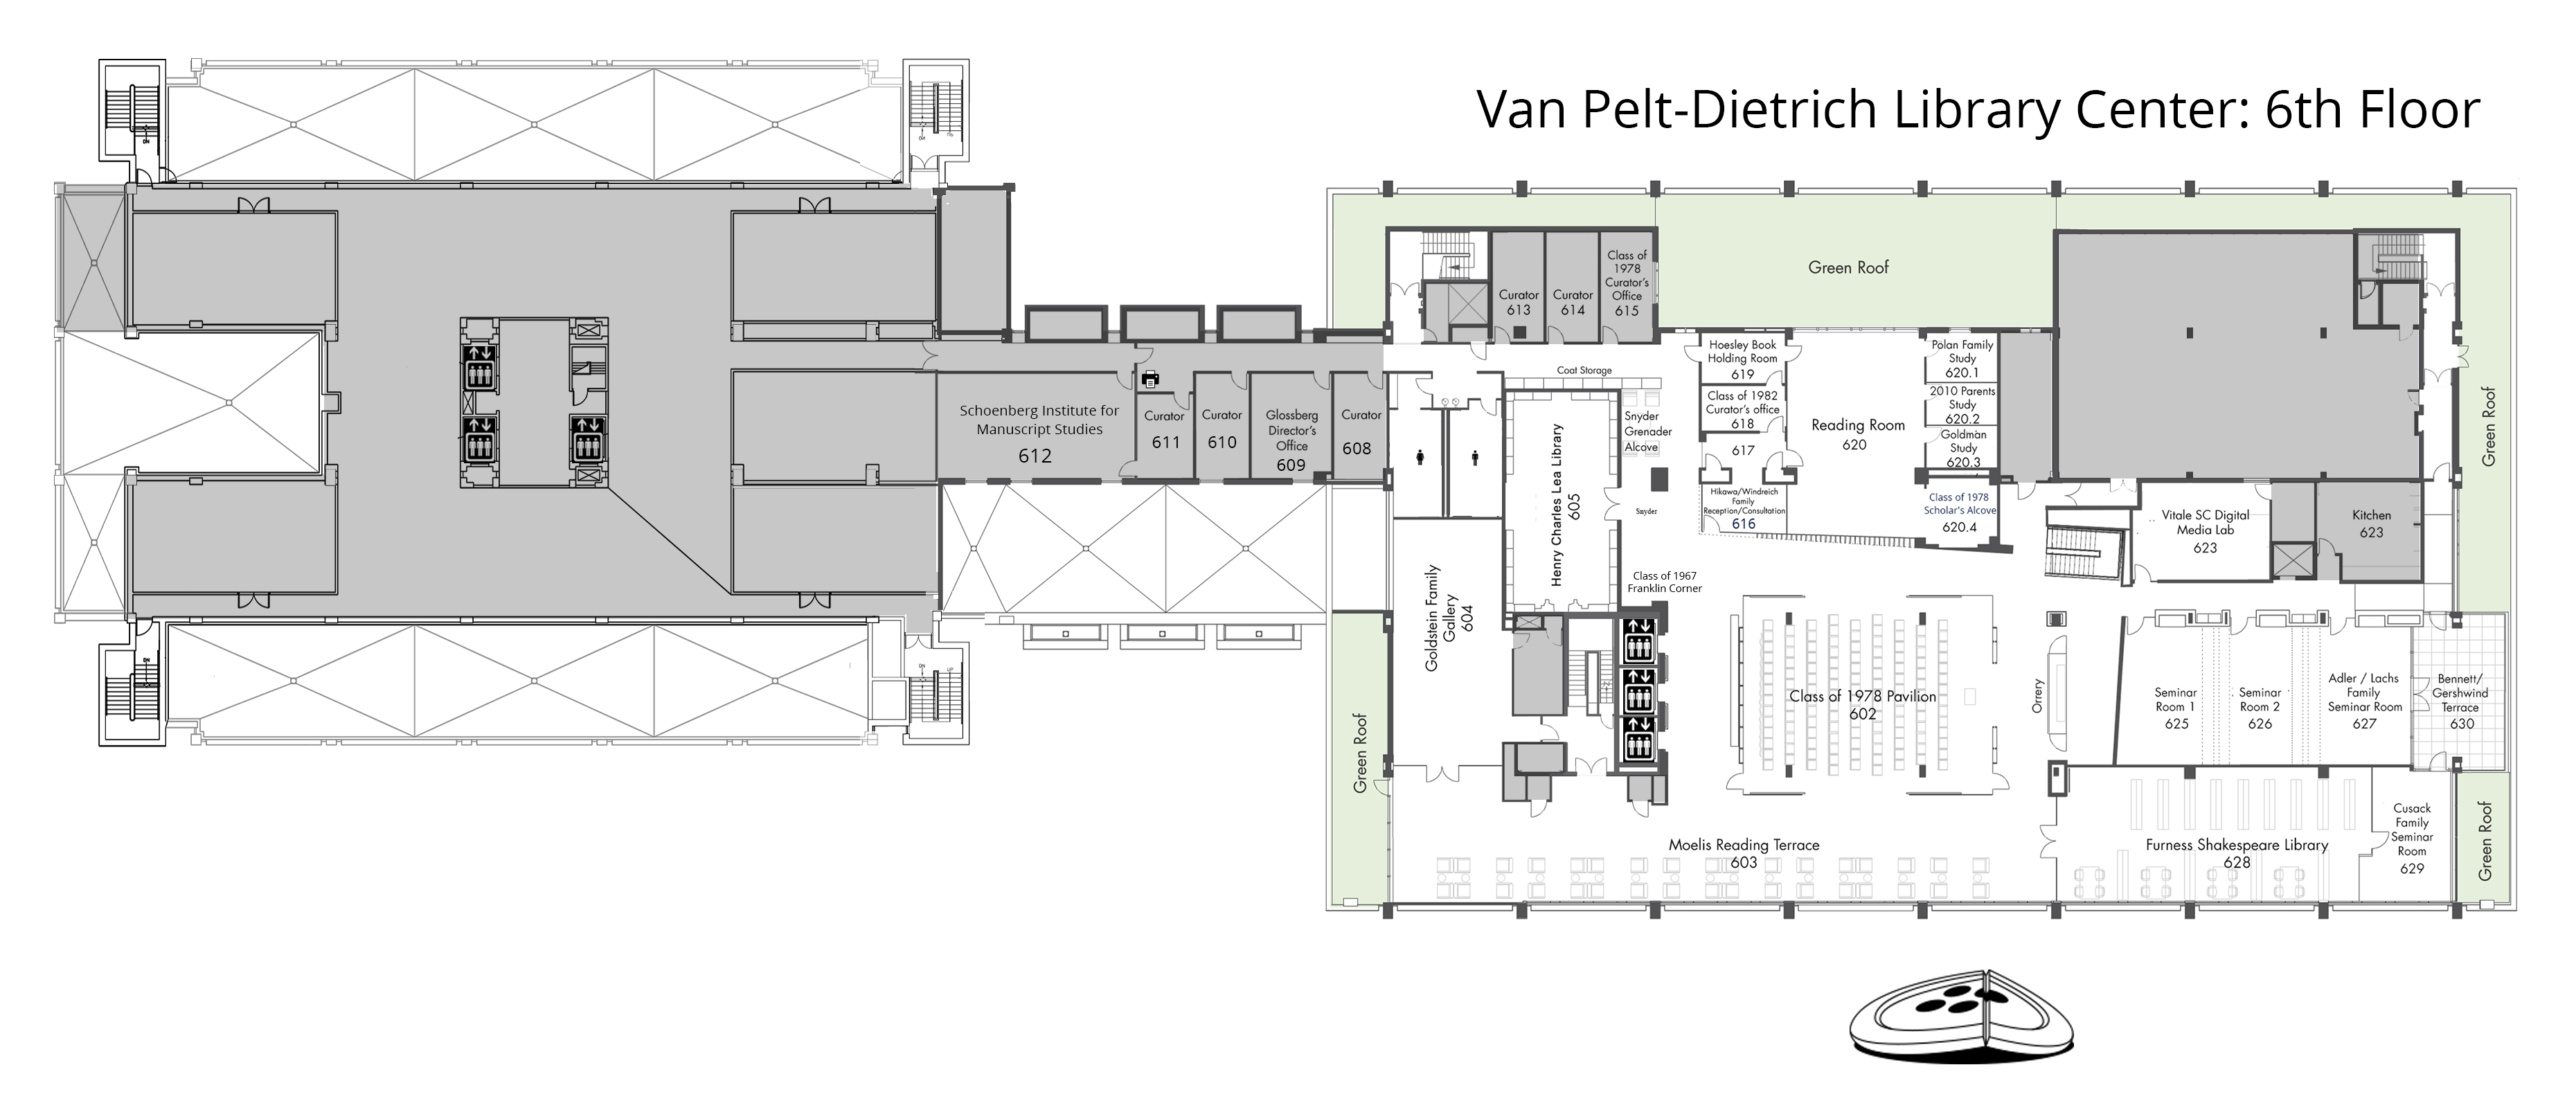 Van Pelt-Dietrich Library Center, sixth floor plan